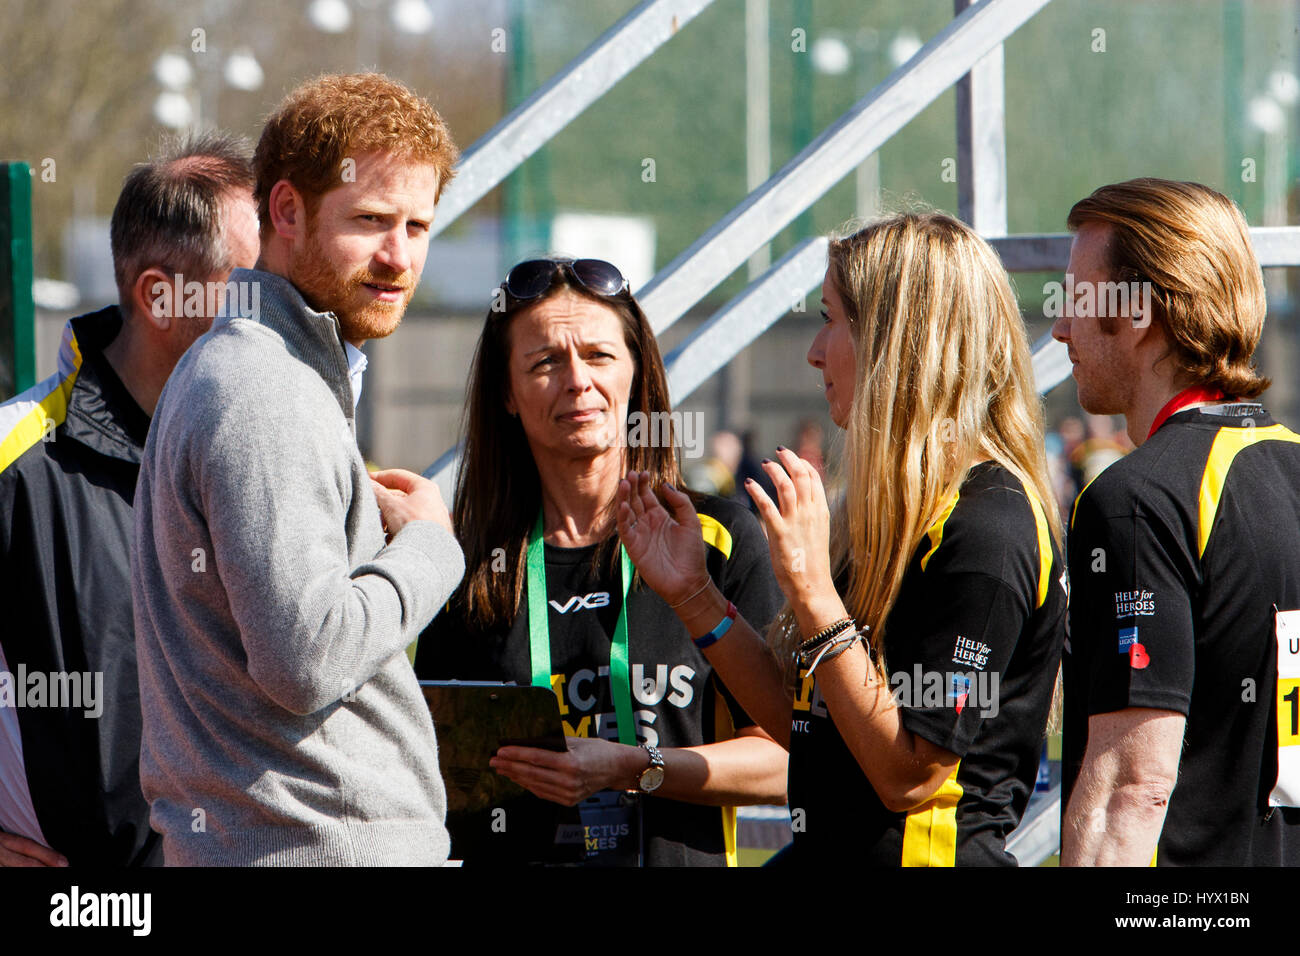 Bath, UK. 7th Apr, 2017. Prince Harry is pictured at the University of Bath Sports Training Village as he attends - Stock Image